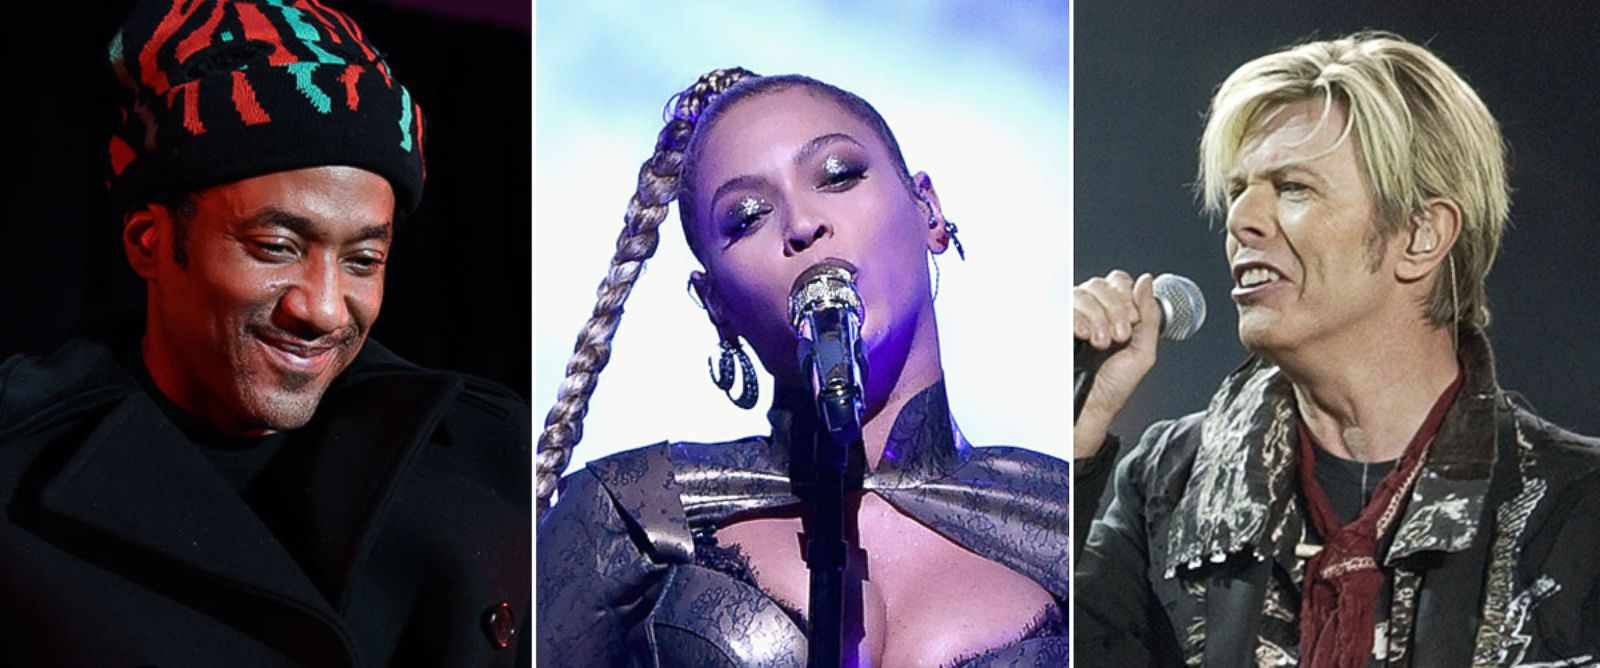 PHOTO: Q-Tip of a Tribe Called Quest, Beyonce, and David Bowie.